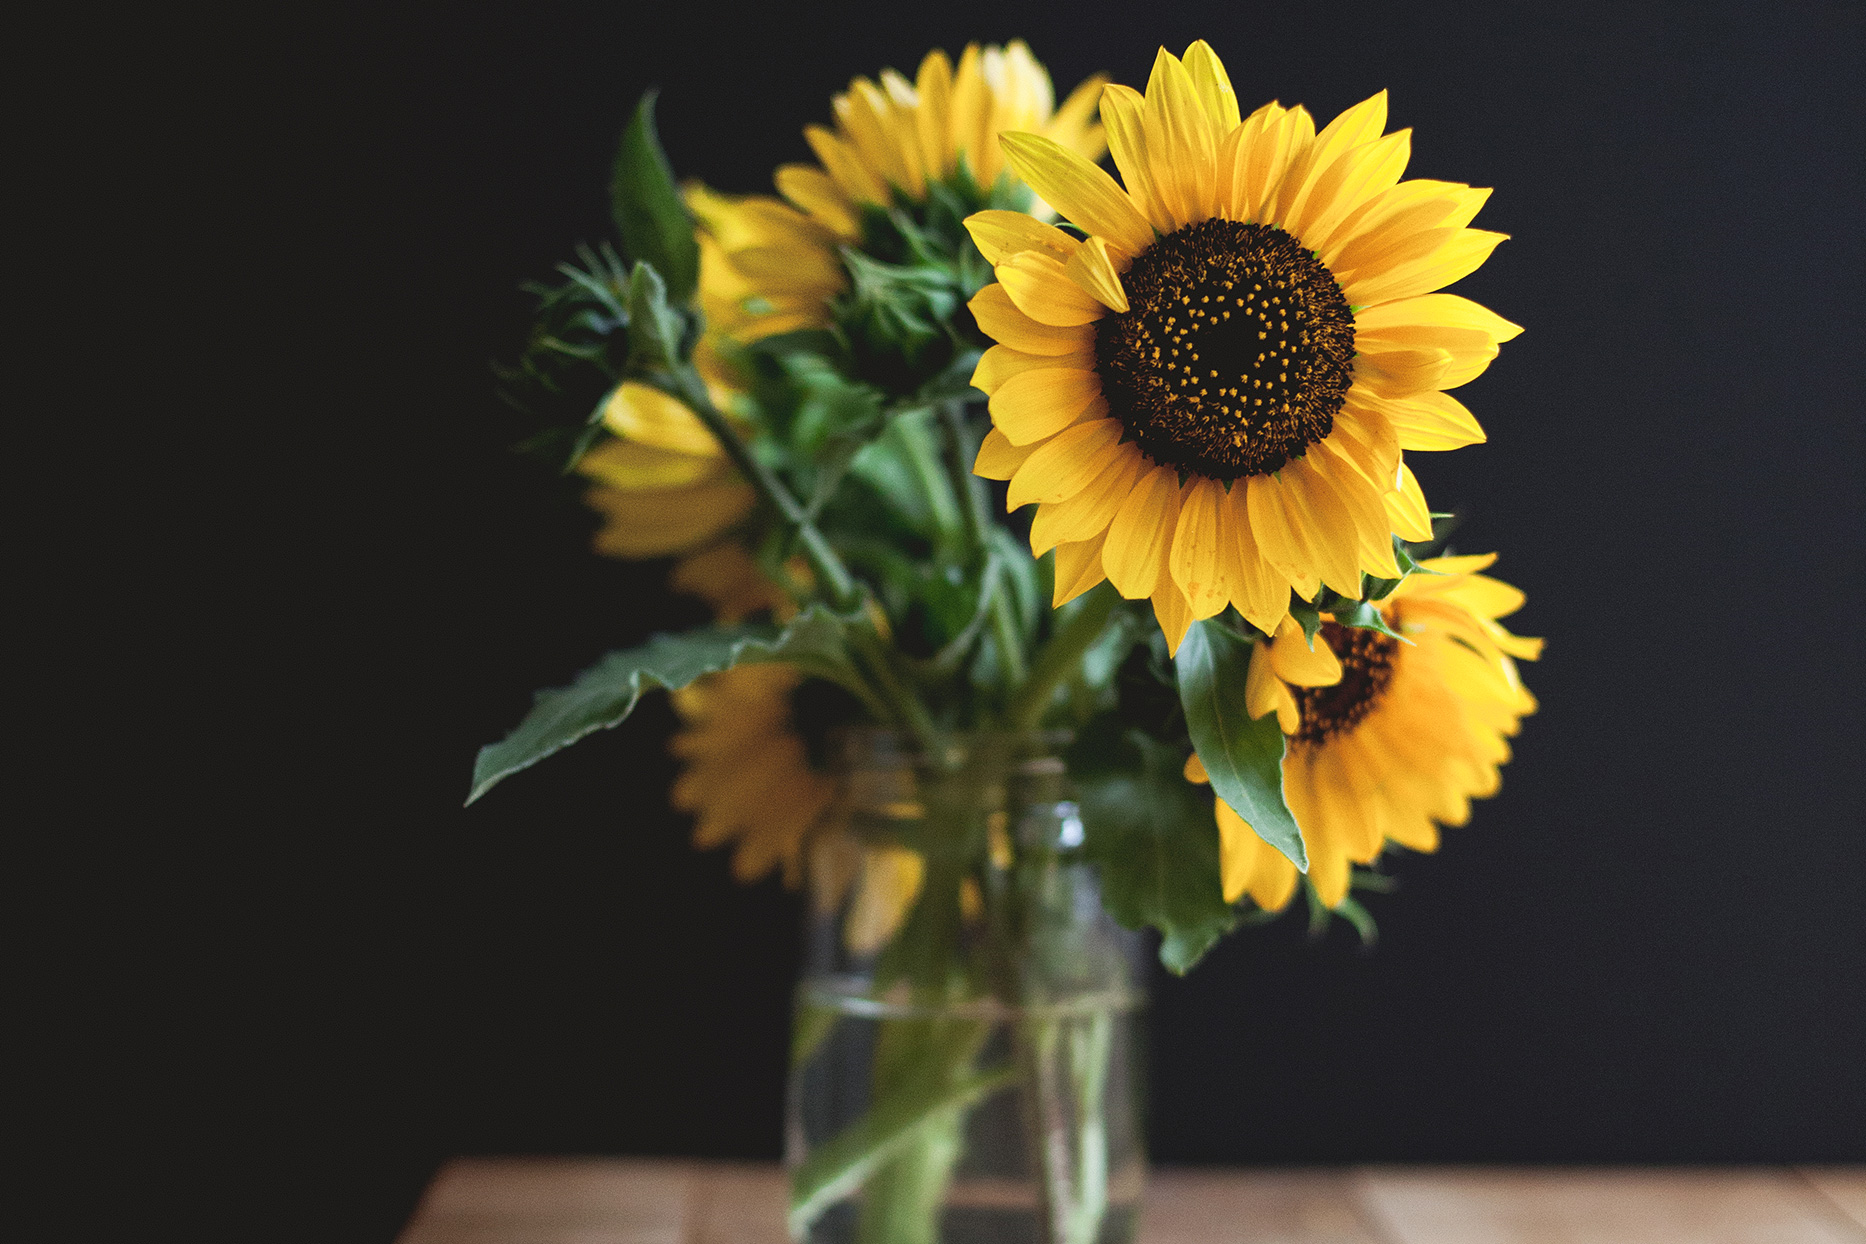 sunflowers in mason jar on table with dark background and high depth of field